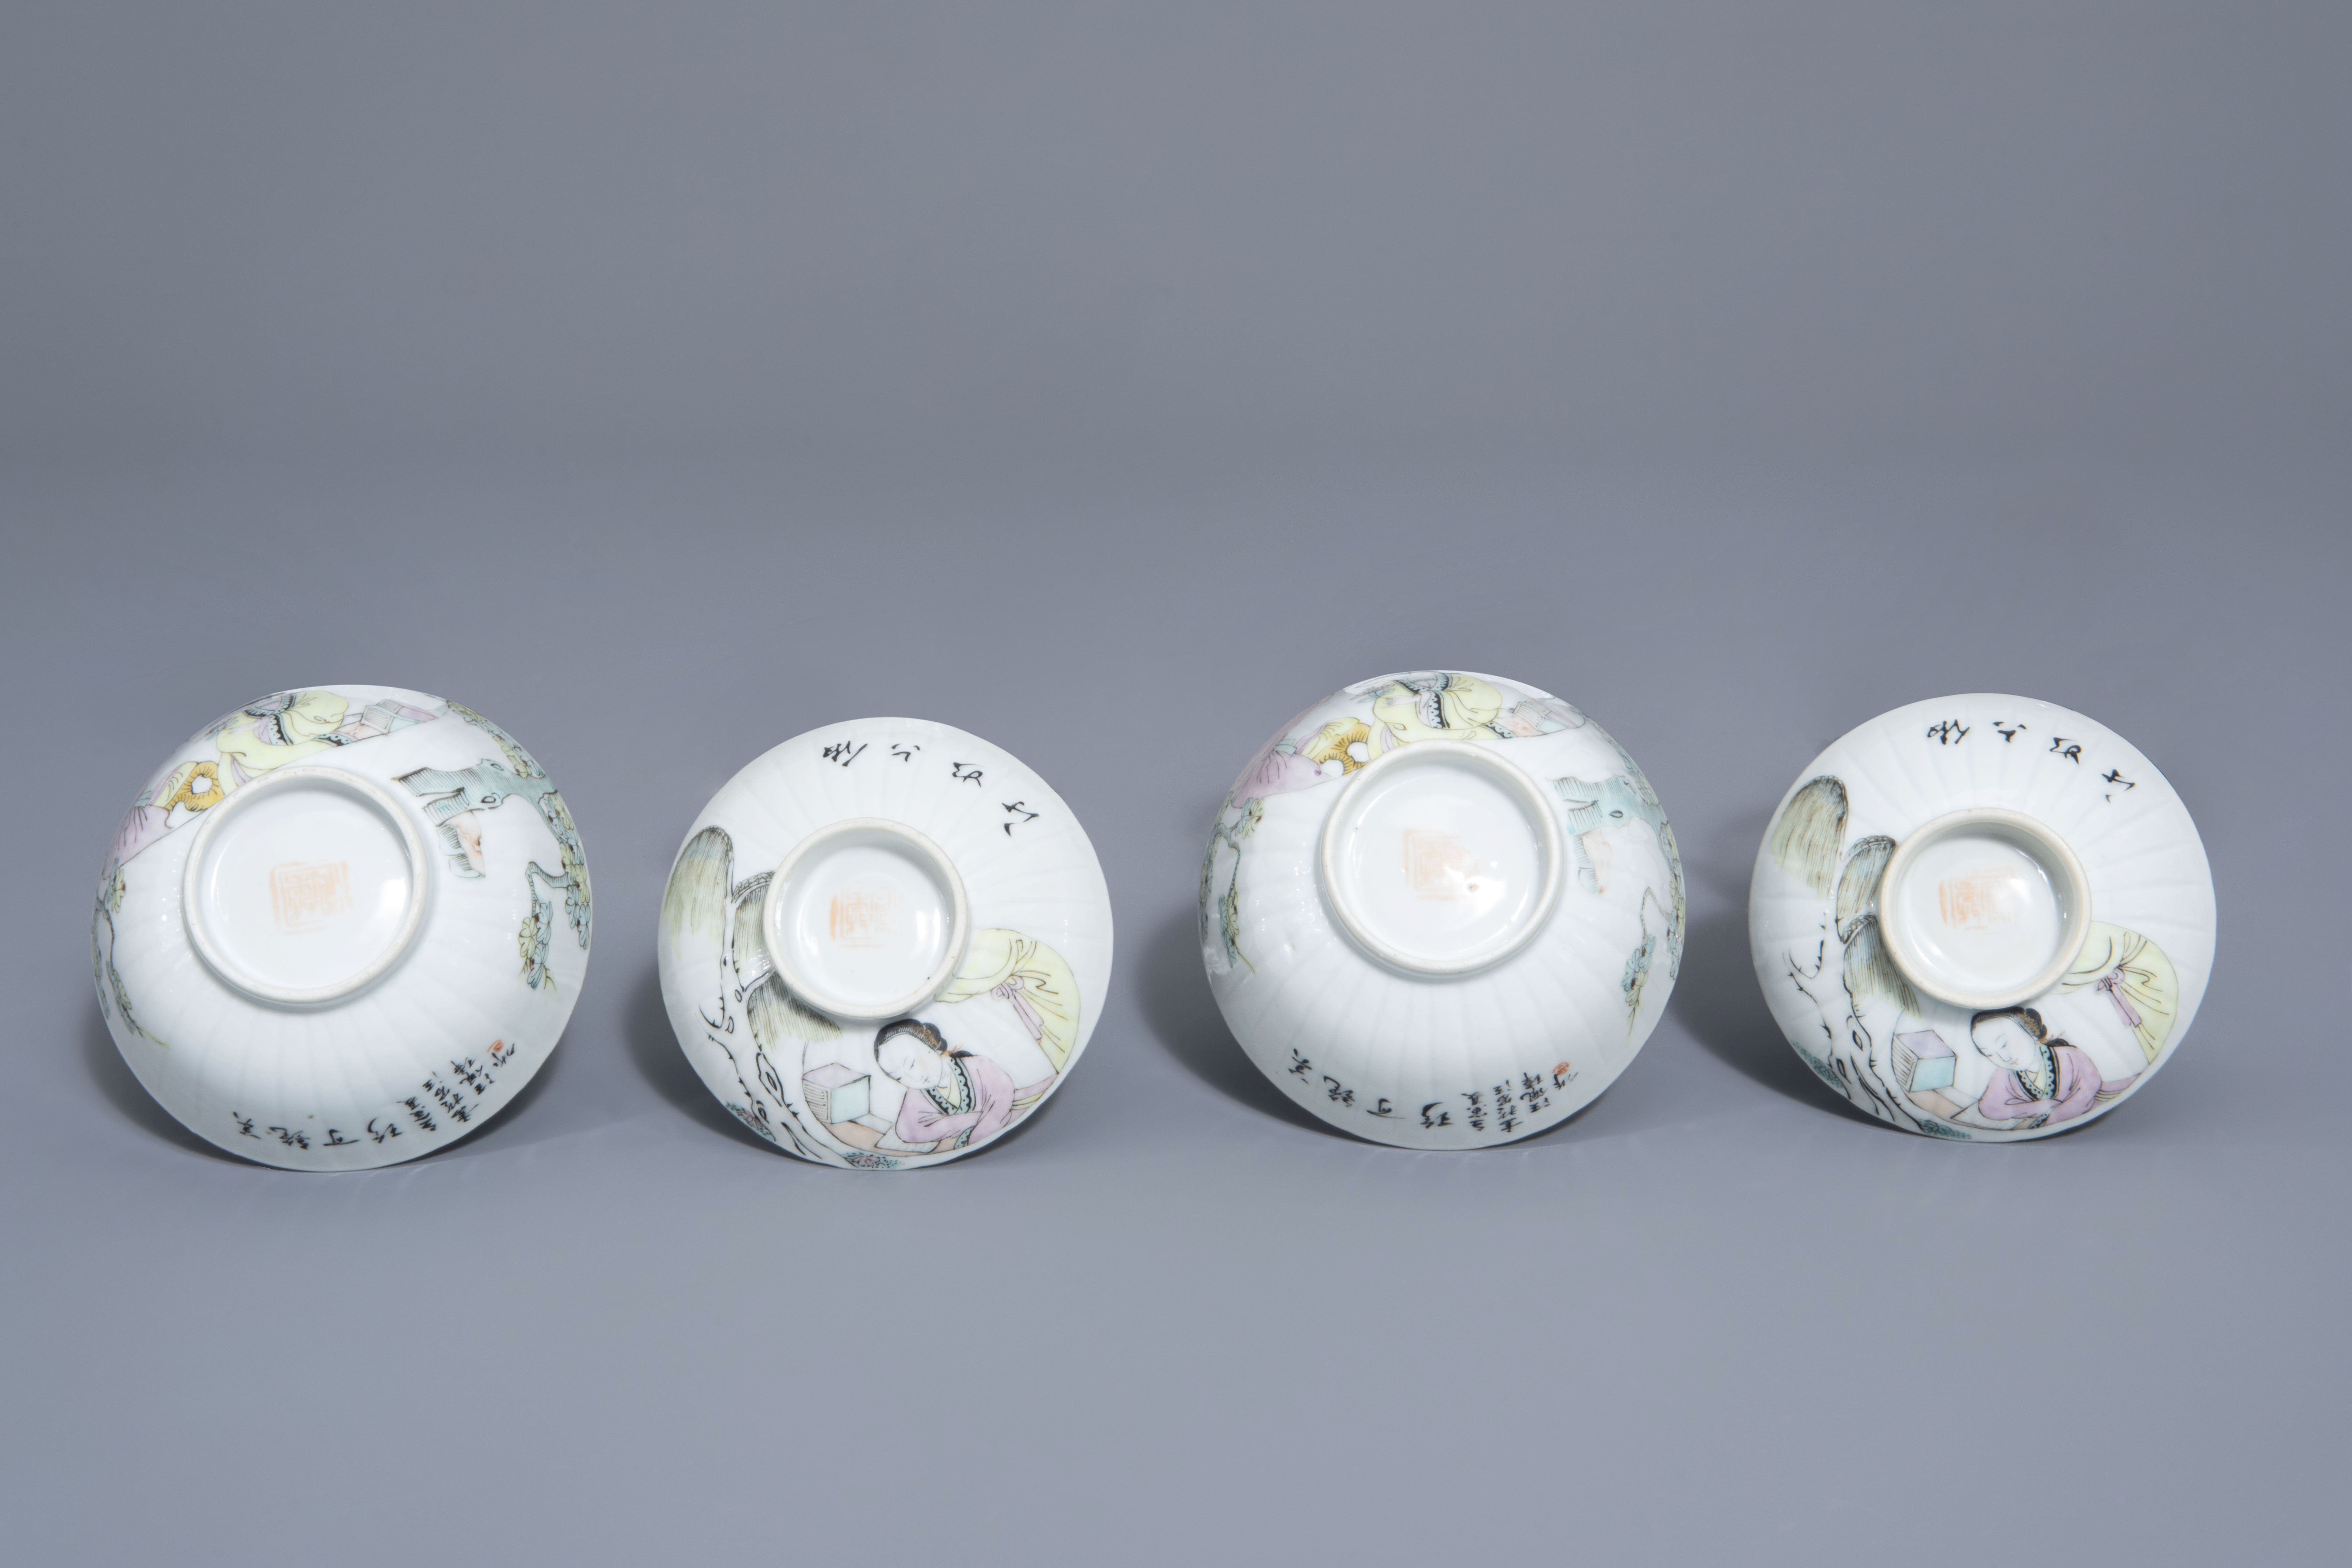 A Chinese seven-piece qianjiang cai tea service with figurative design, 19th/20th C. - Image 13 of 19